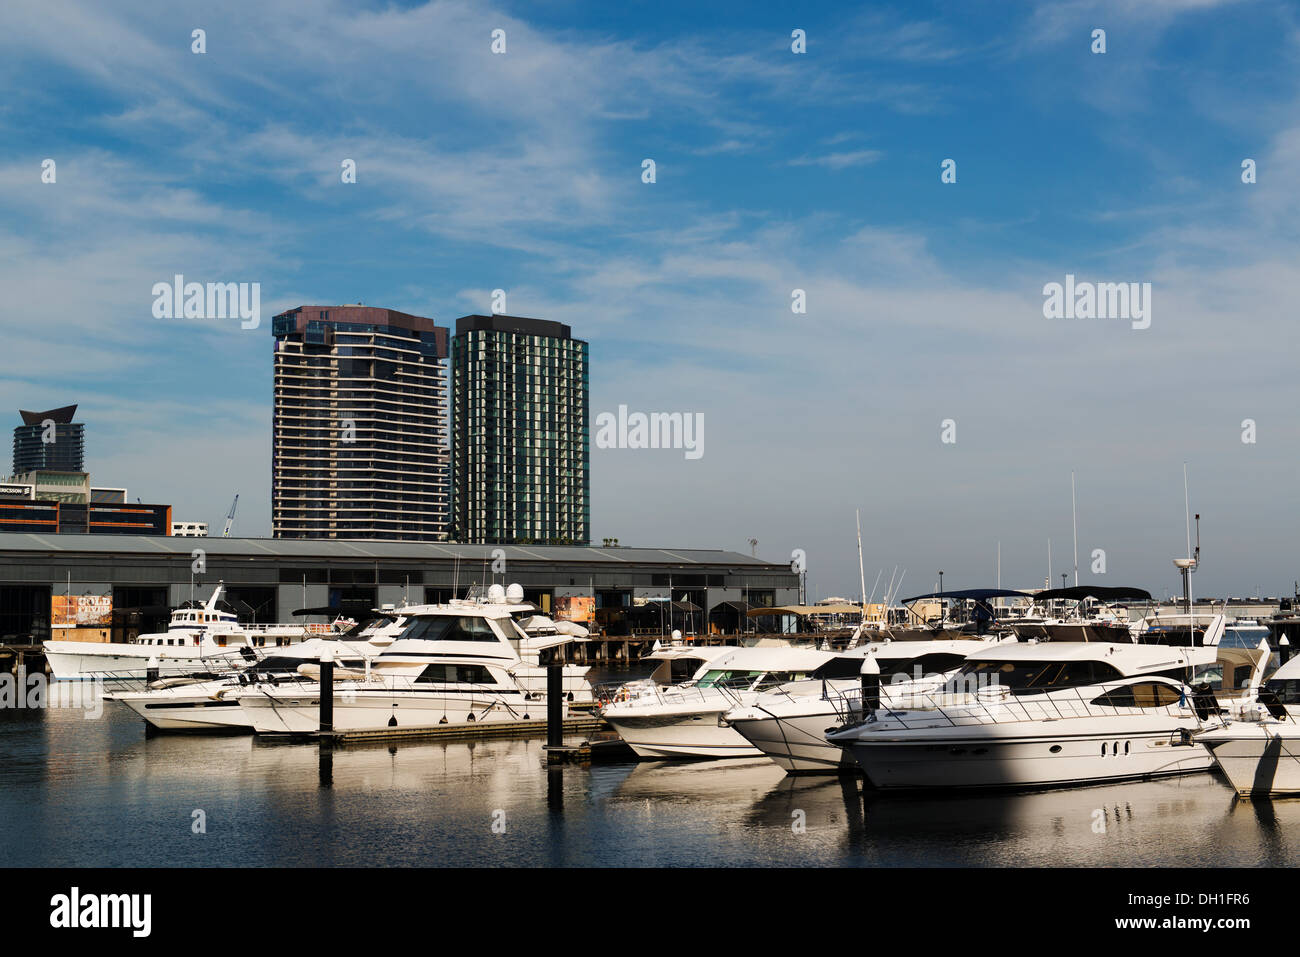 Motor boats moored in Melbourne's Docklands precinct with the apartment buildings beyond. - Stock Image